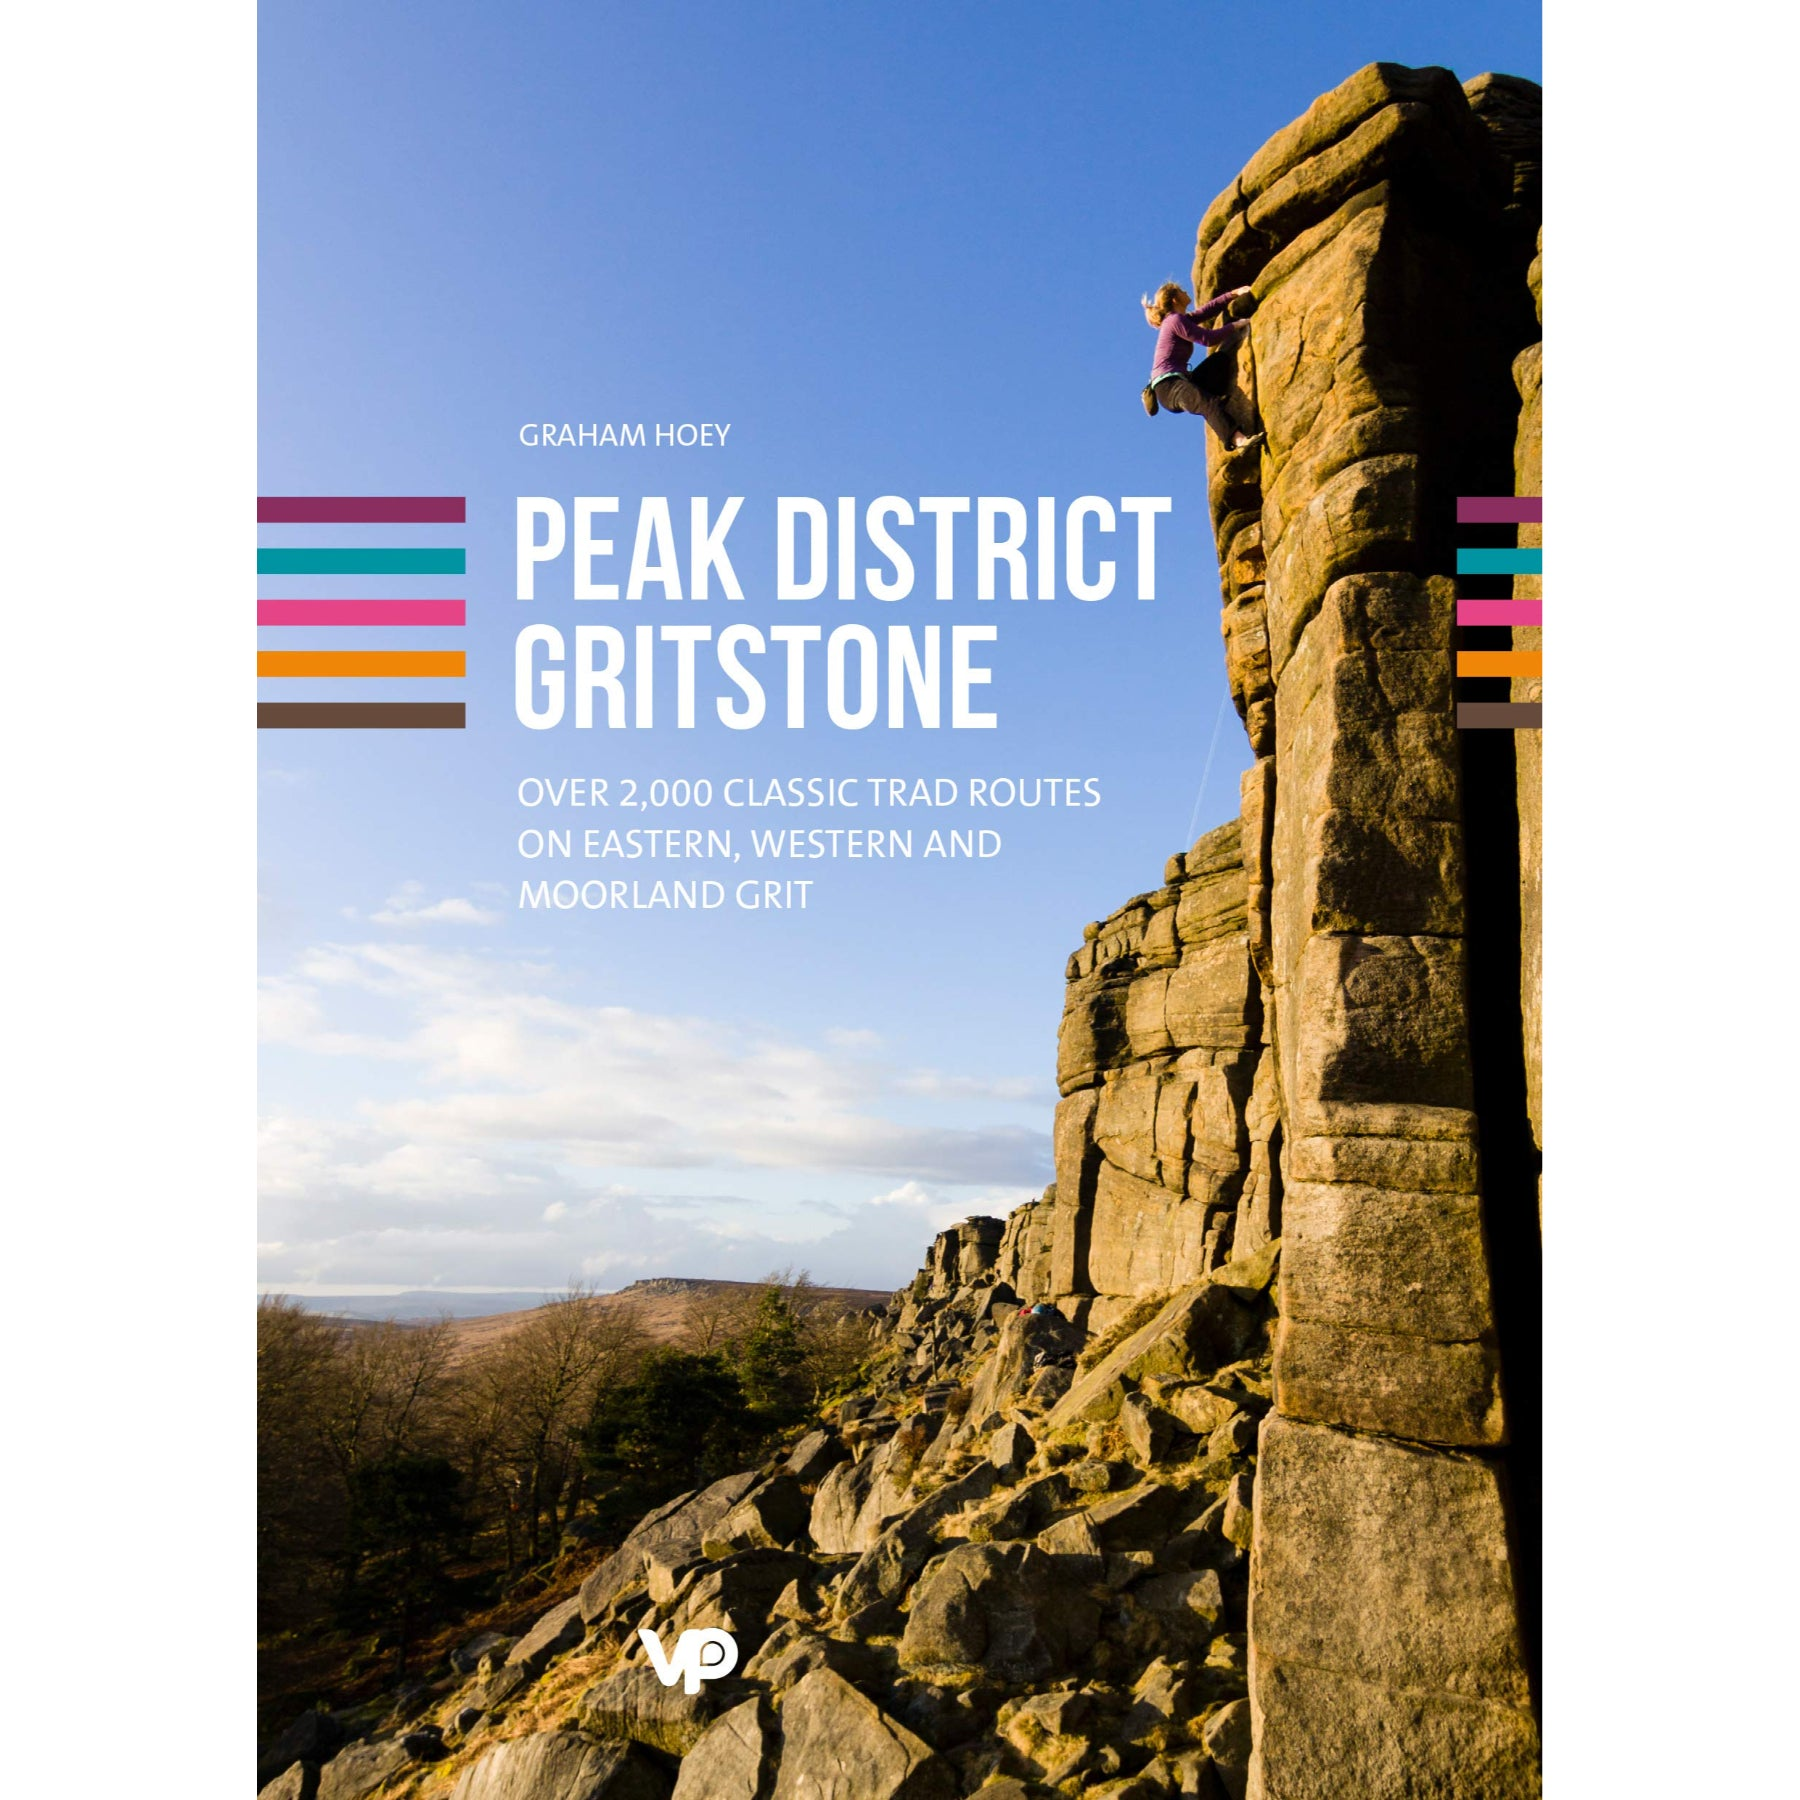 Peak District Gritstone Guide Book Cover 2021